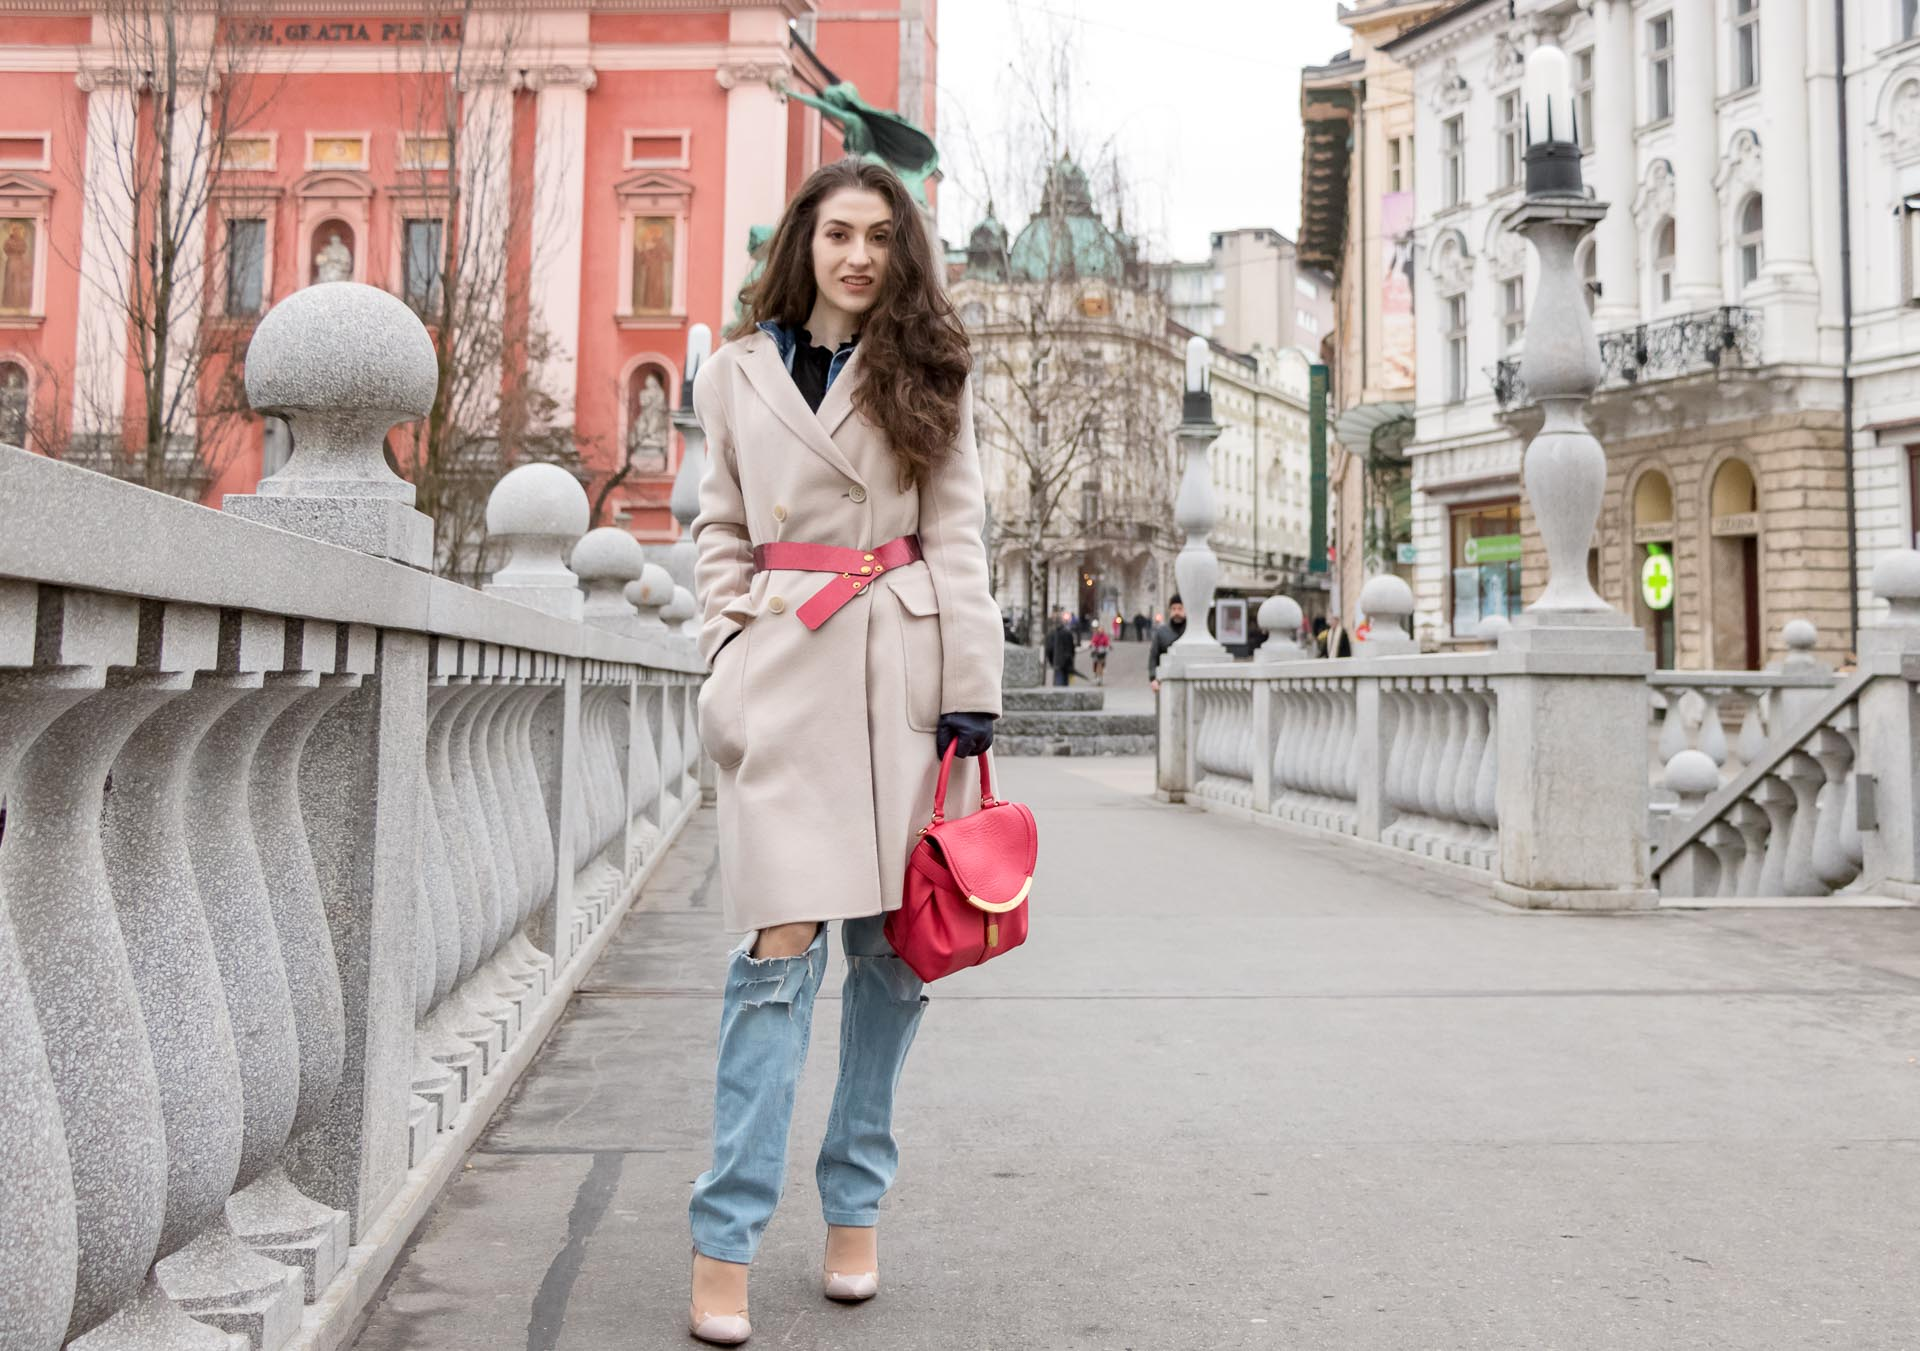 Fashion Blogger Veronika Lipar of Brunette from Wall Street dressed in distressed blue Levi's jeans, off-white double breasted Weekend Maxmara coat, red dangling belt, blush Gianvito Rossi plexi pumps, See by Chloe pink top handle bag, blue leather gloves on the bridge of Ljubljana